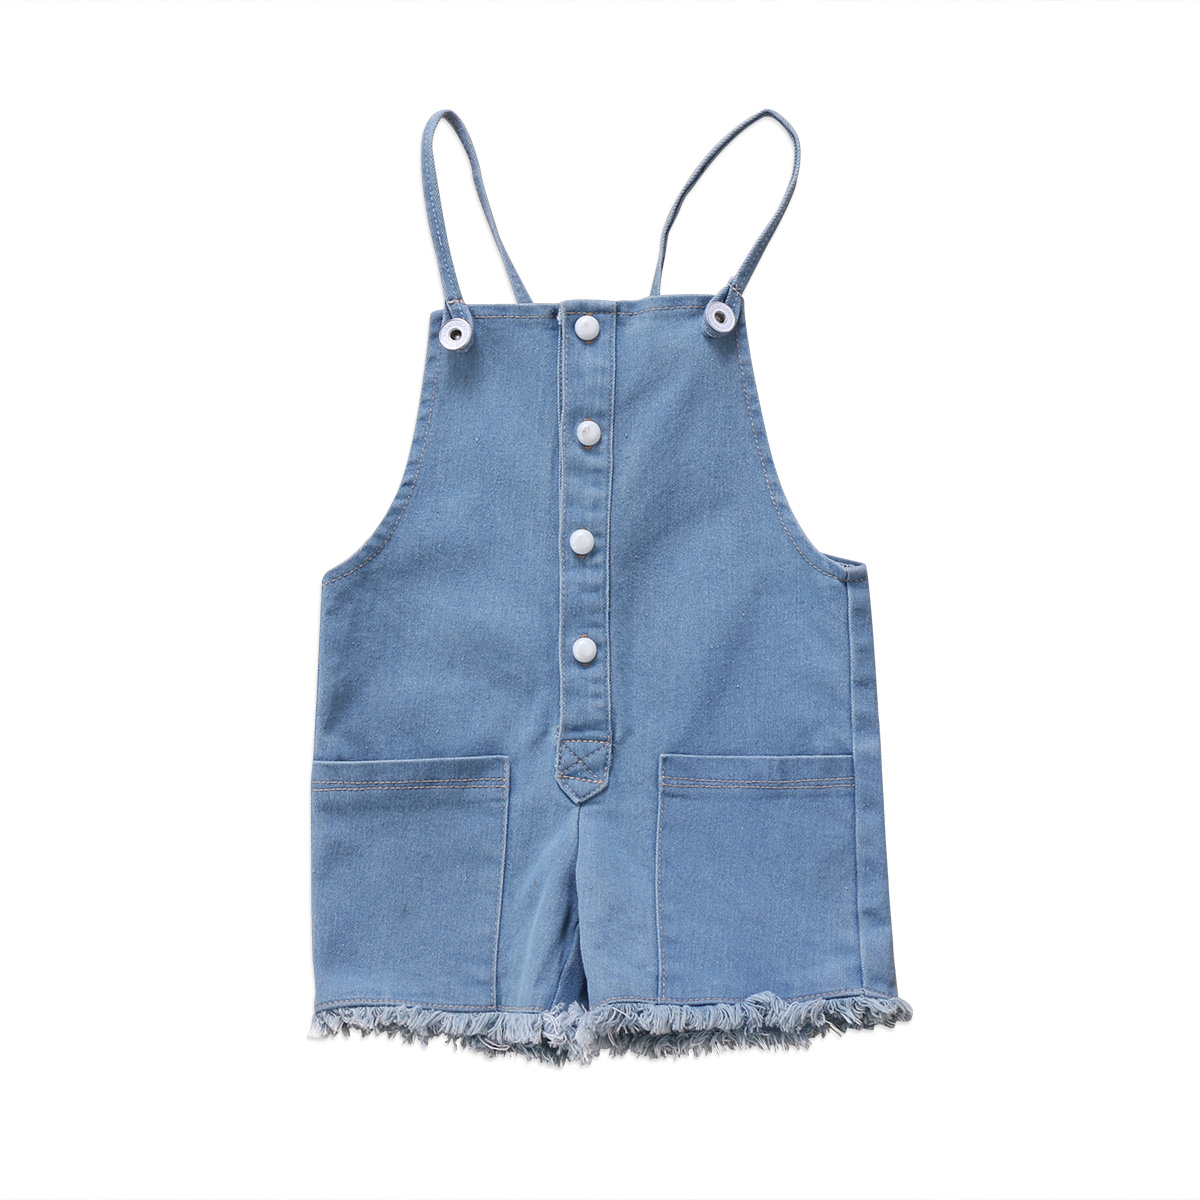 Baby Rompers Newborn Kids Baby Girls Denim Romper Sleeveless Jumpsuit Pants Outfit Set Summer Fashion Baby Clothes 2pcs set newborn floral baby girl clothes 2017 summer sleeveless cotton ruffles romper baby bodysuit headband outfits sunsuit